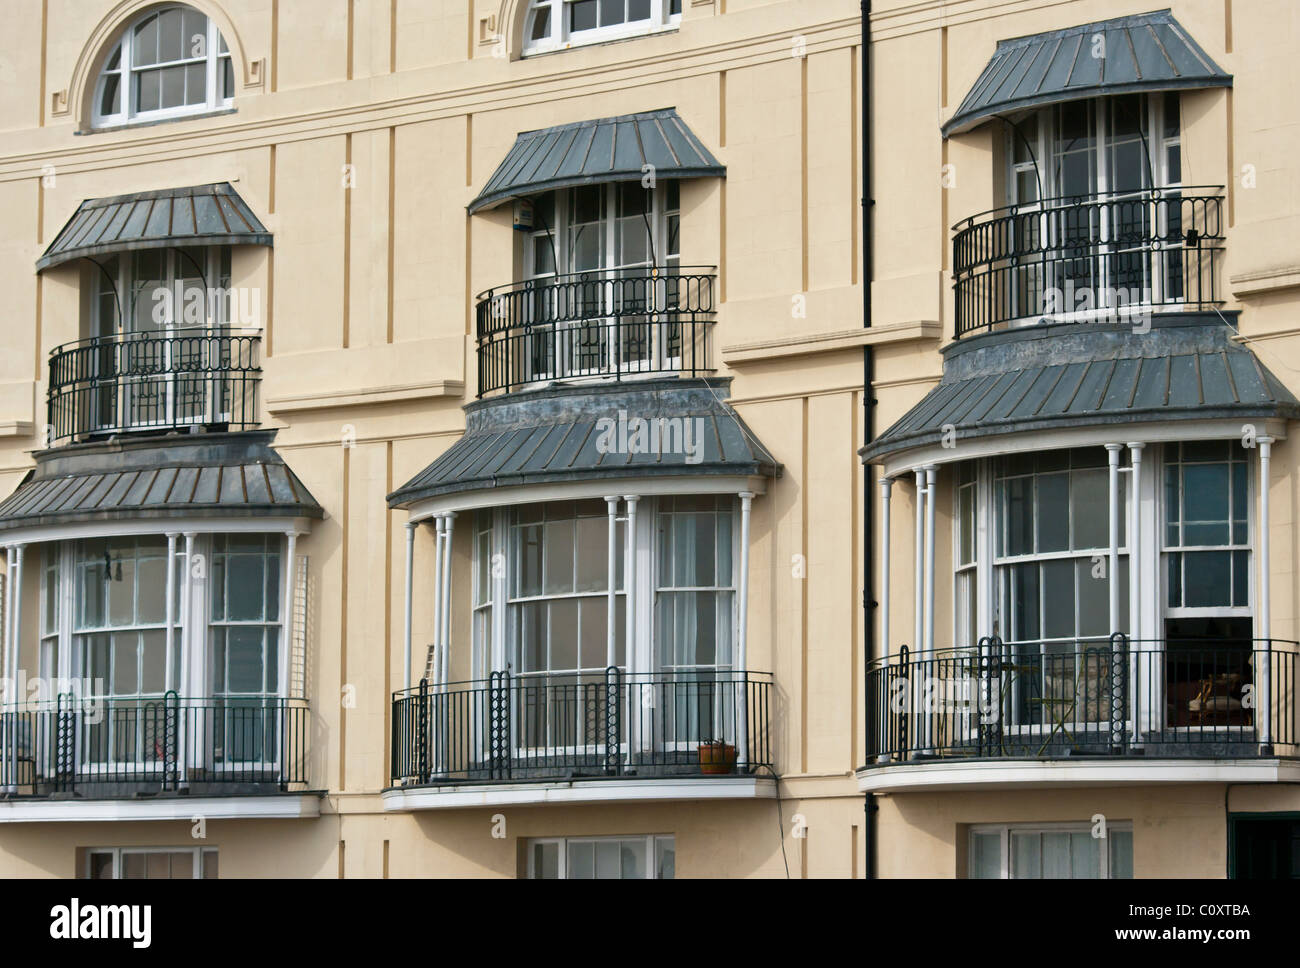 Bay Windows With Balconies Pelham Crescent Hastings East Sussex England - Stock Image